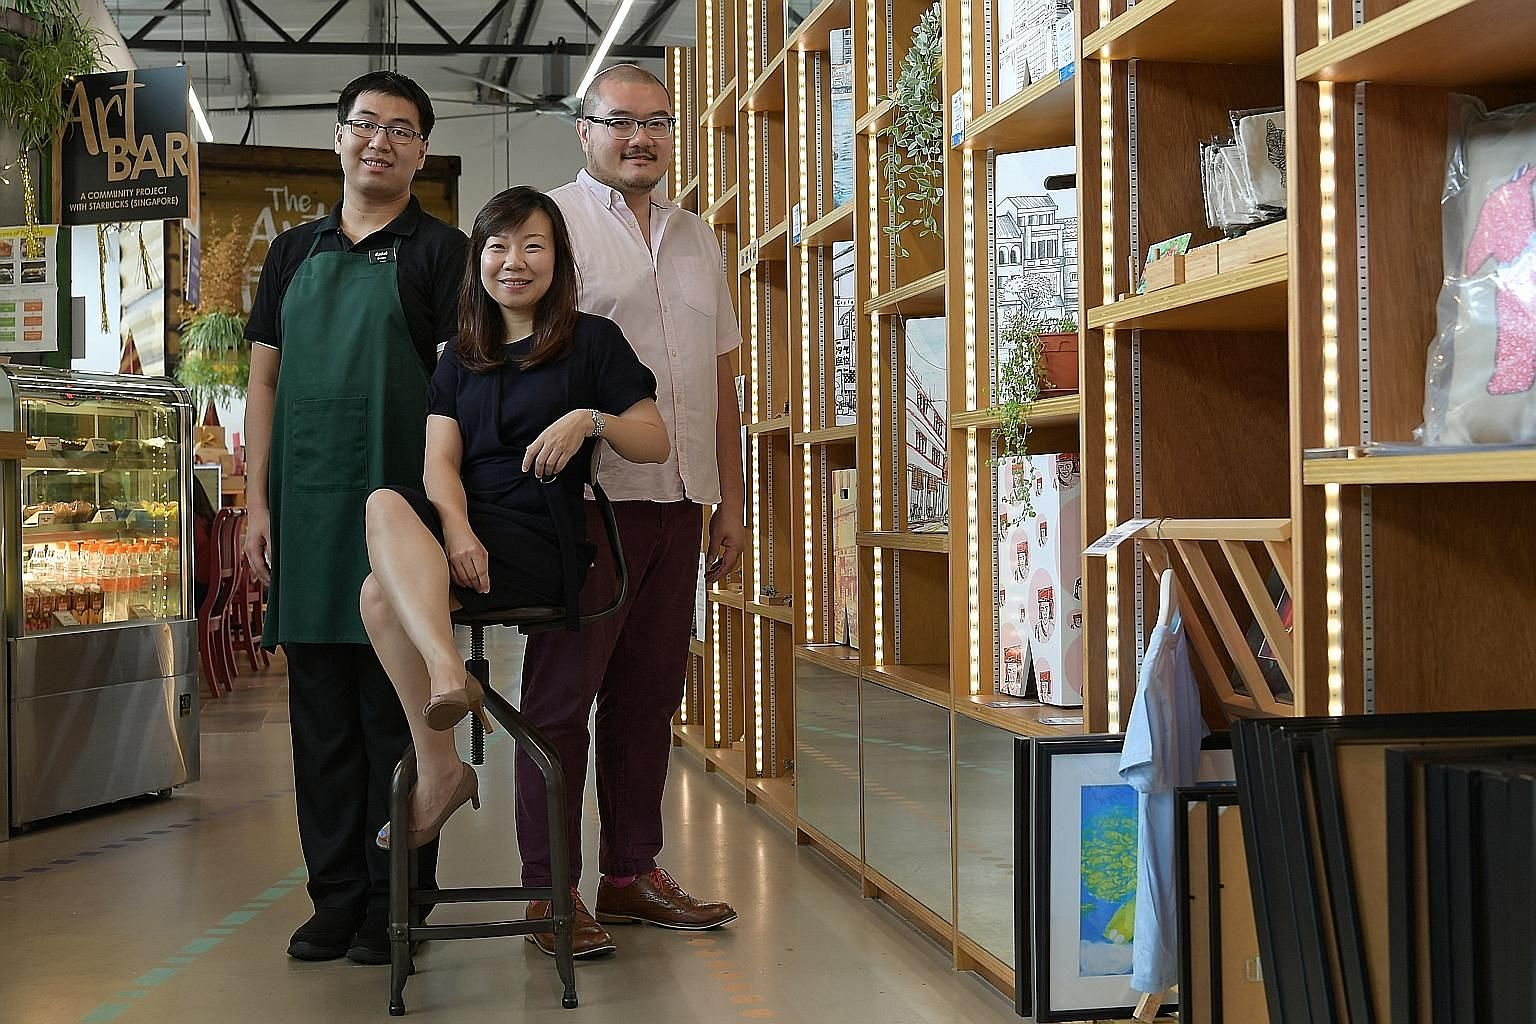 Ms Jacelyn Lim, ARC's deputy executive director, flanked by Mr Caleb Lim (in apron) and Mr Victor Ong, the centre's creative director, at the Art Faculty's flagship store in Lengkok Bahru.